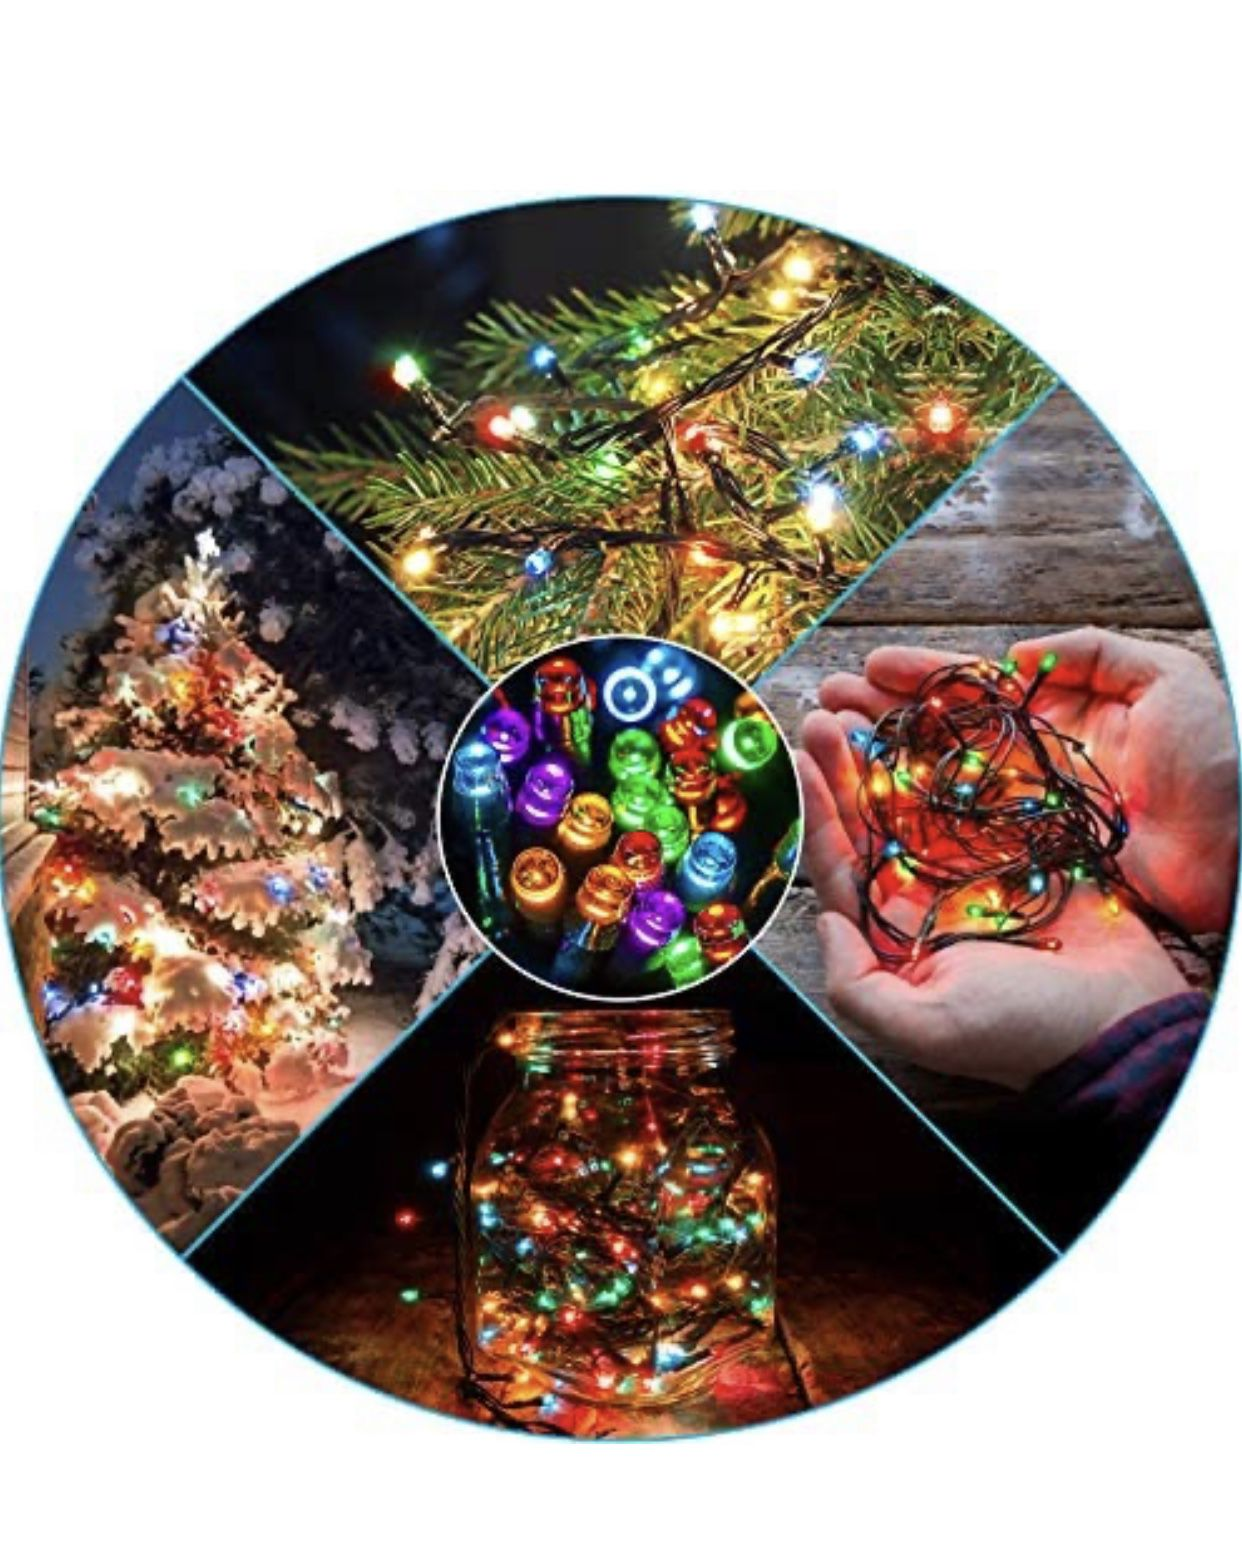 Waterproof LED Outdoor Christmas String Lights, LED UL Certified 8 Modes with End-to-End Plug, Indoor & Outside Fairy Light for Christmas Tree, Patio,